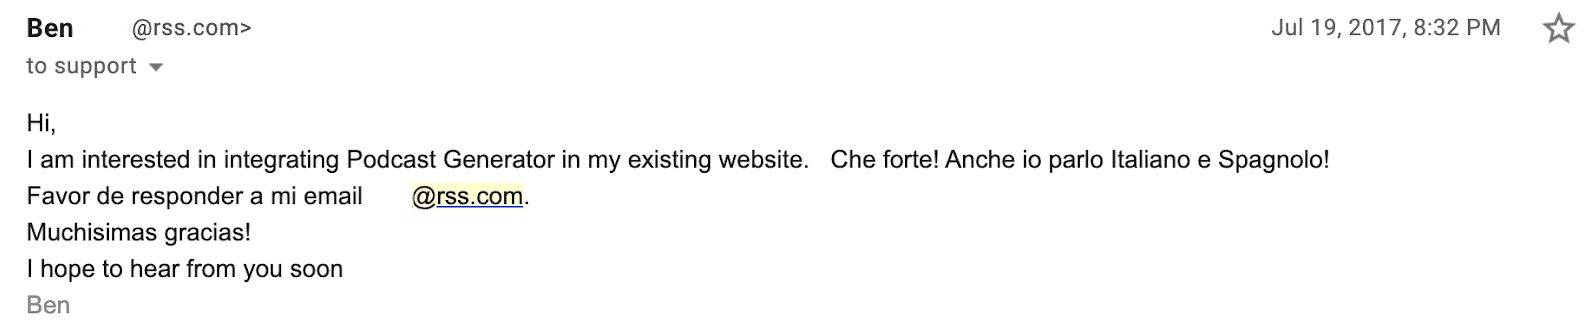 email from ben to alberto